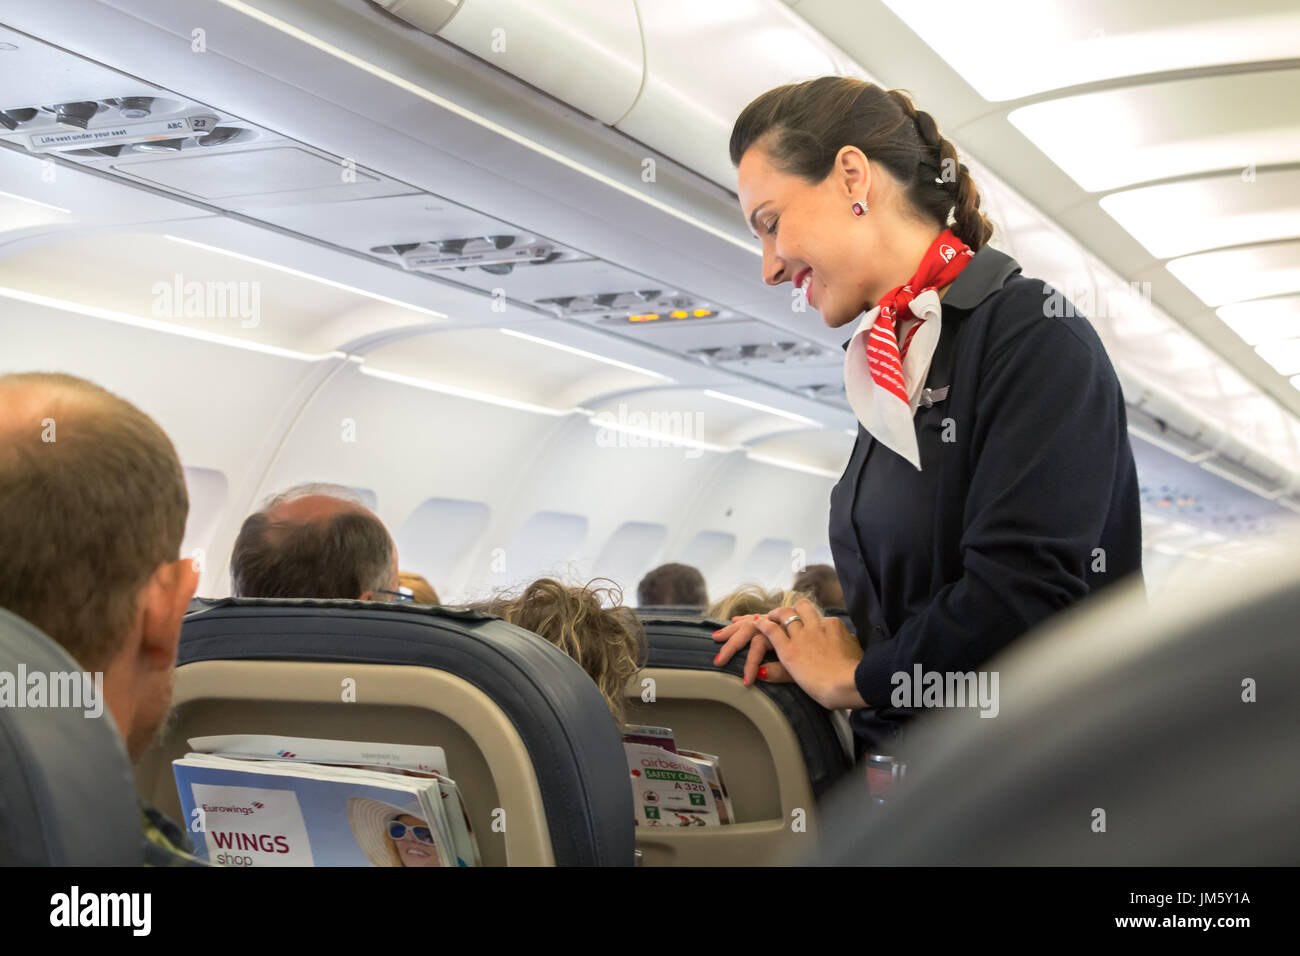 Thessaloniki , Greece - July 16, 2017: A female flight attendant  is speaking with a passenger sitting in the economy class. - Stock Image